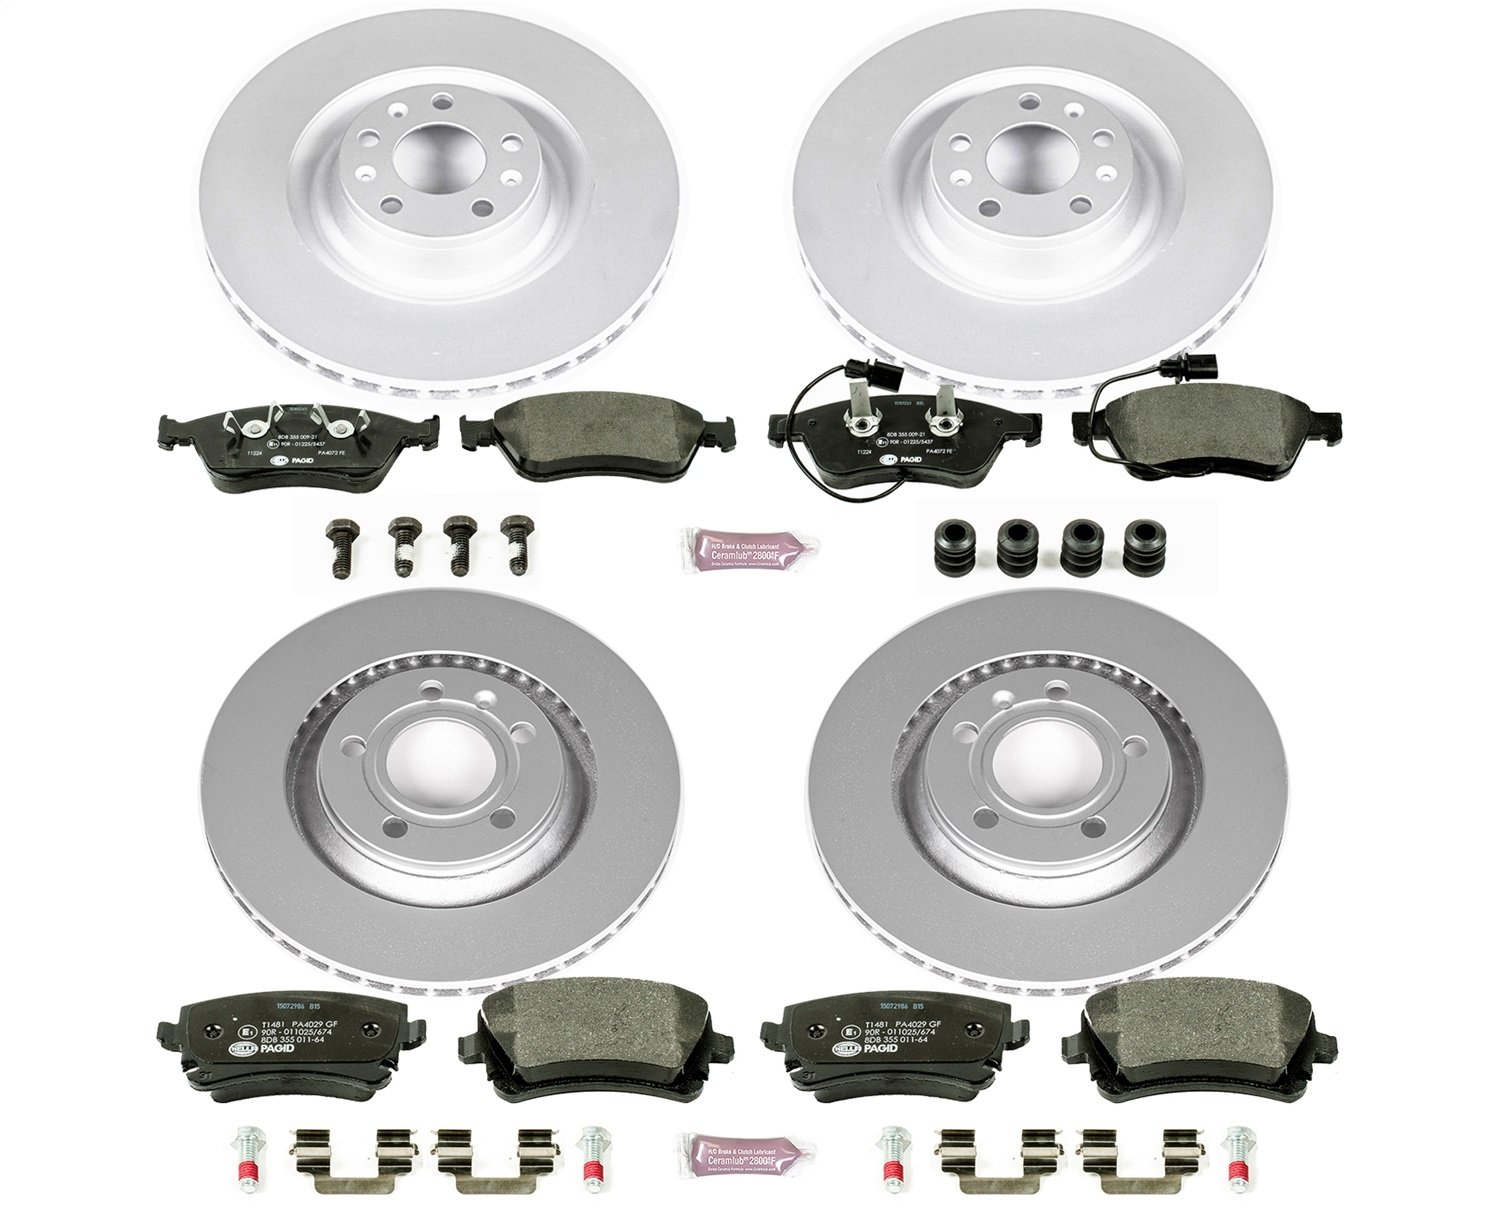 Power Stop ESK5791 Front and Rear Euro-Stop Brake Kit